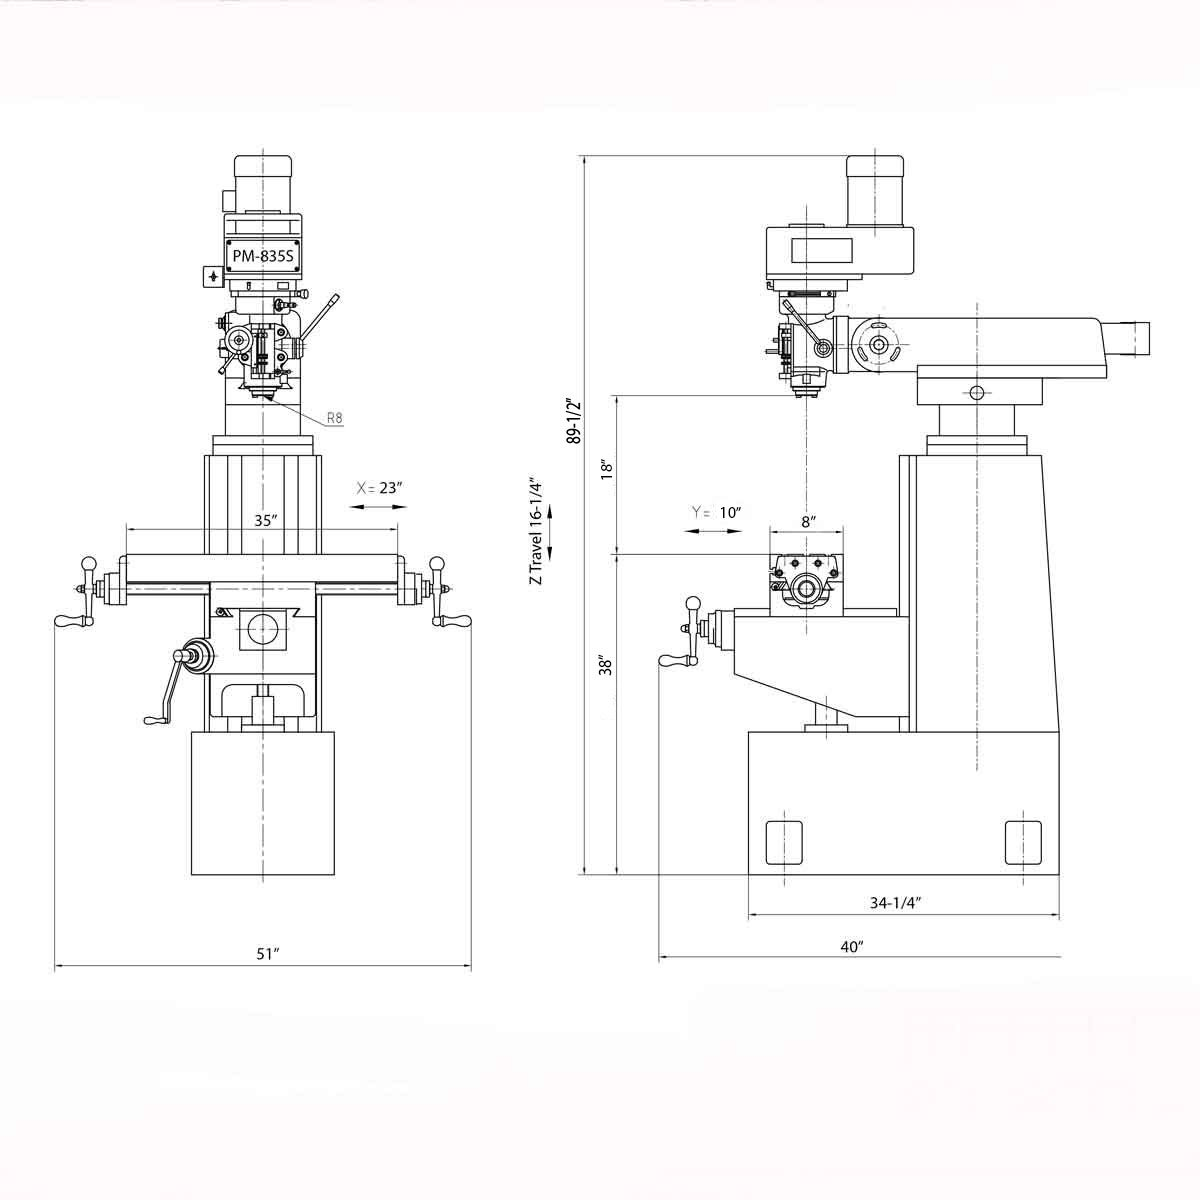 bridgeport milling machine wiring diagram deh p5200hd Single Phase Motor 6 Wire Connection Single Phase Transformer Wiring Diagram